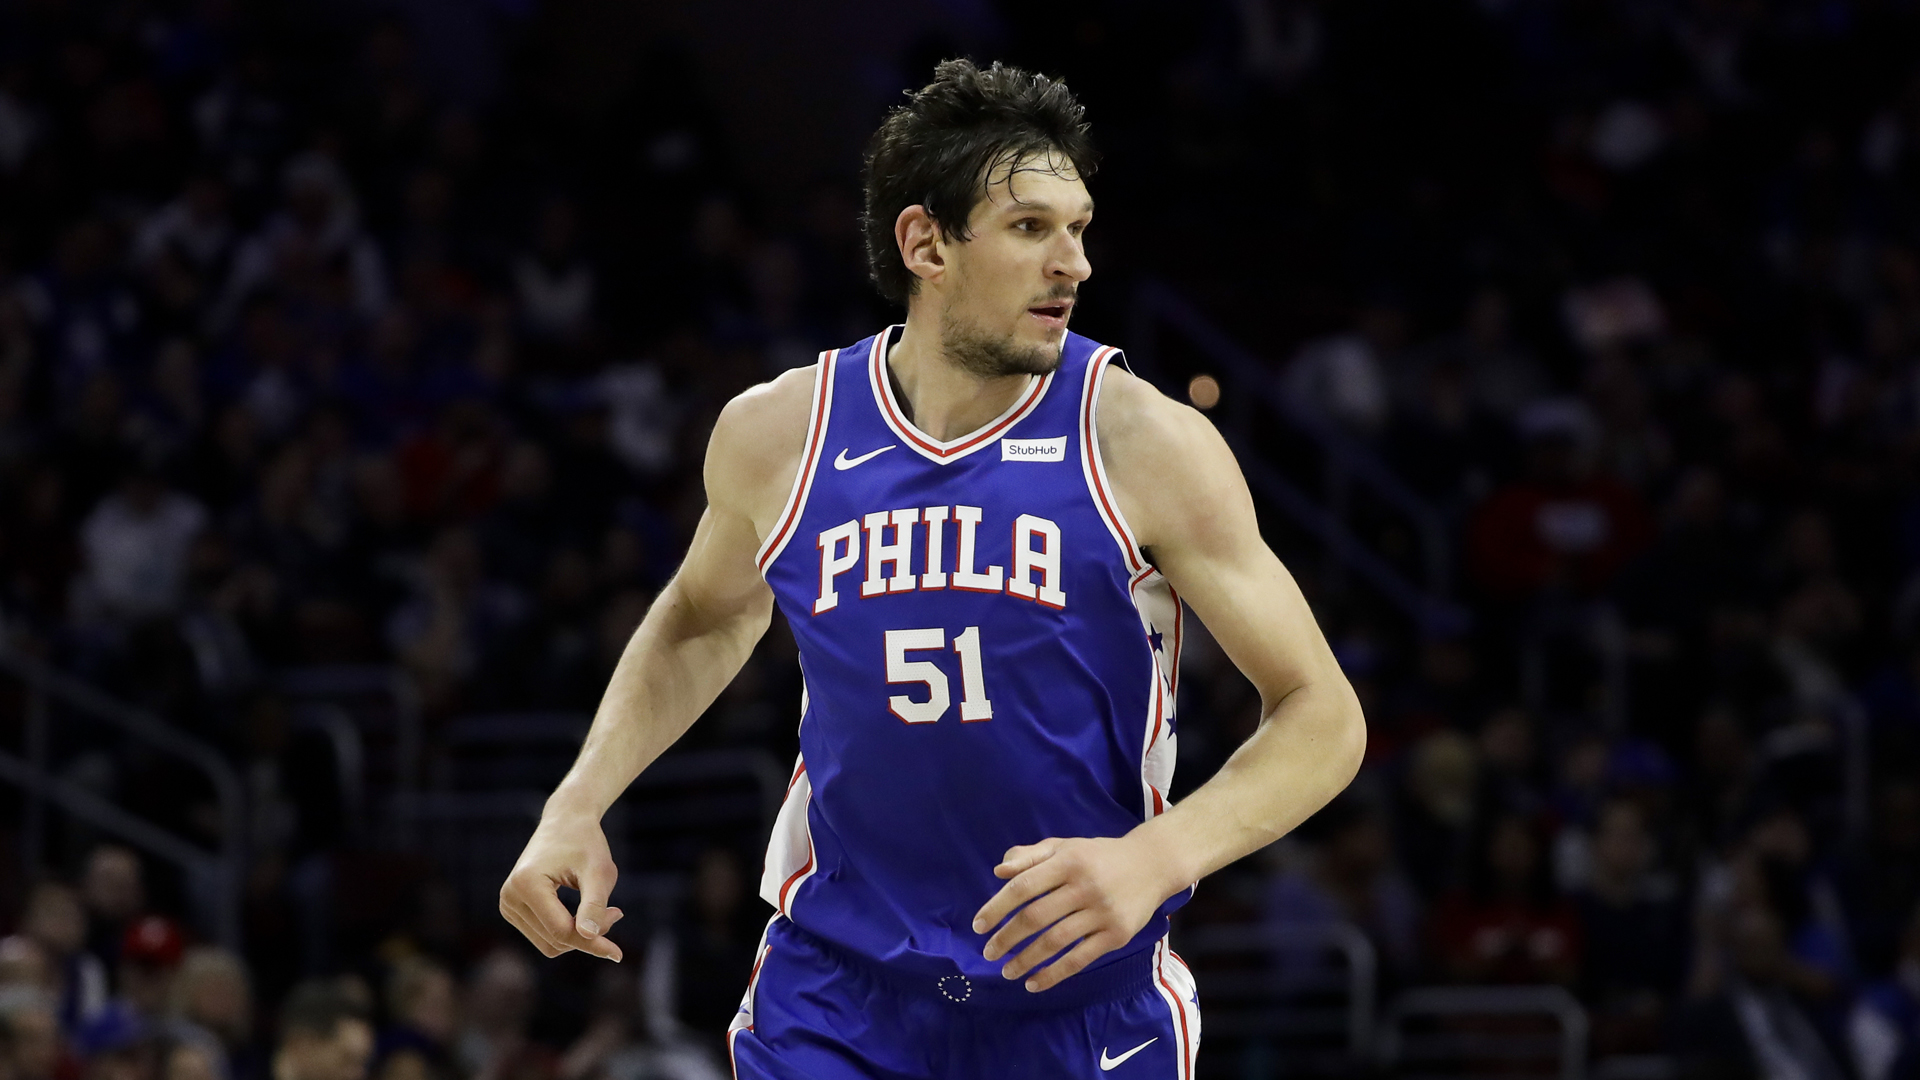 Boban Marjanovic shines in first start as Sixer | NBC Sports Philadelphia